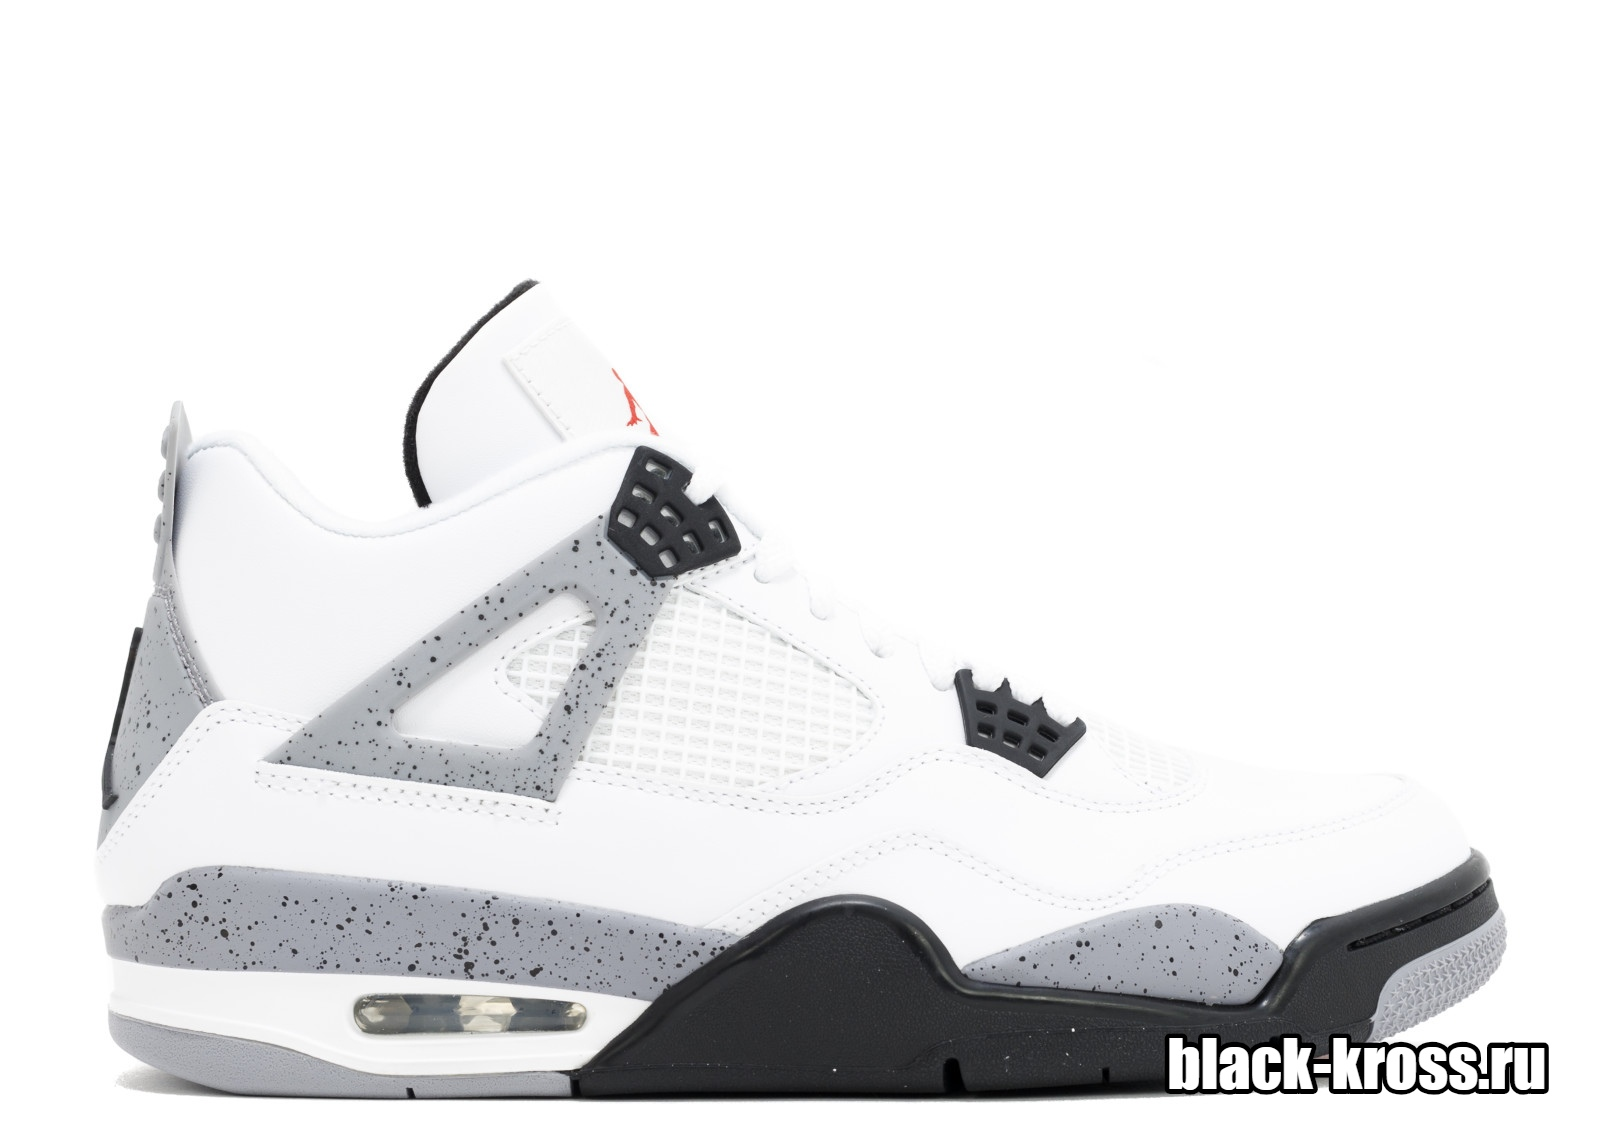 NIKE AIR JORDAN IV White & Grey (41-45)